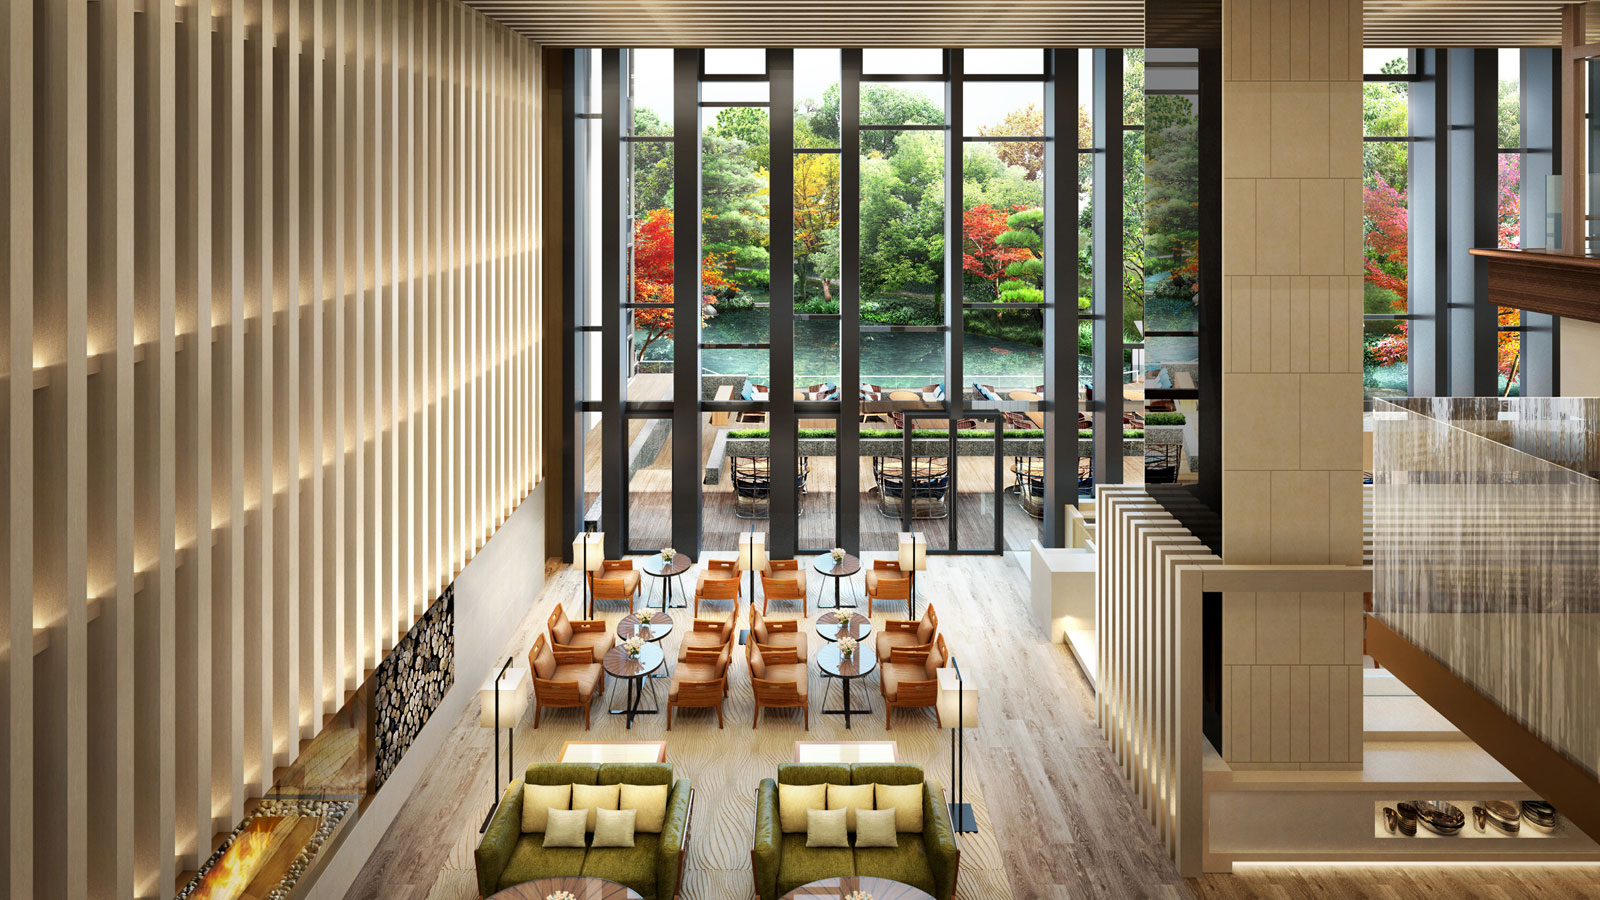 Four Seasons Hotel Kyoto Open's In Japan's Ancient Imperial Capital 10